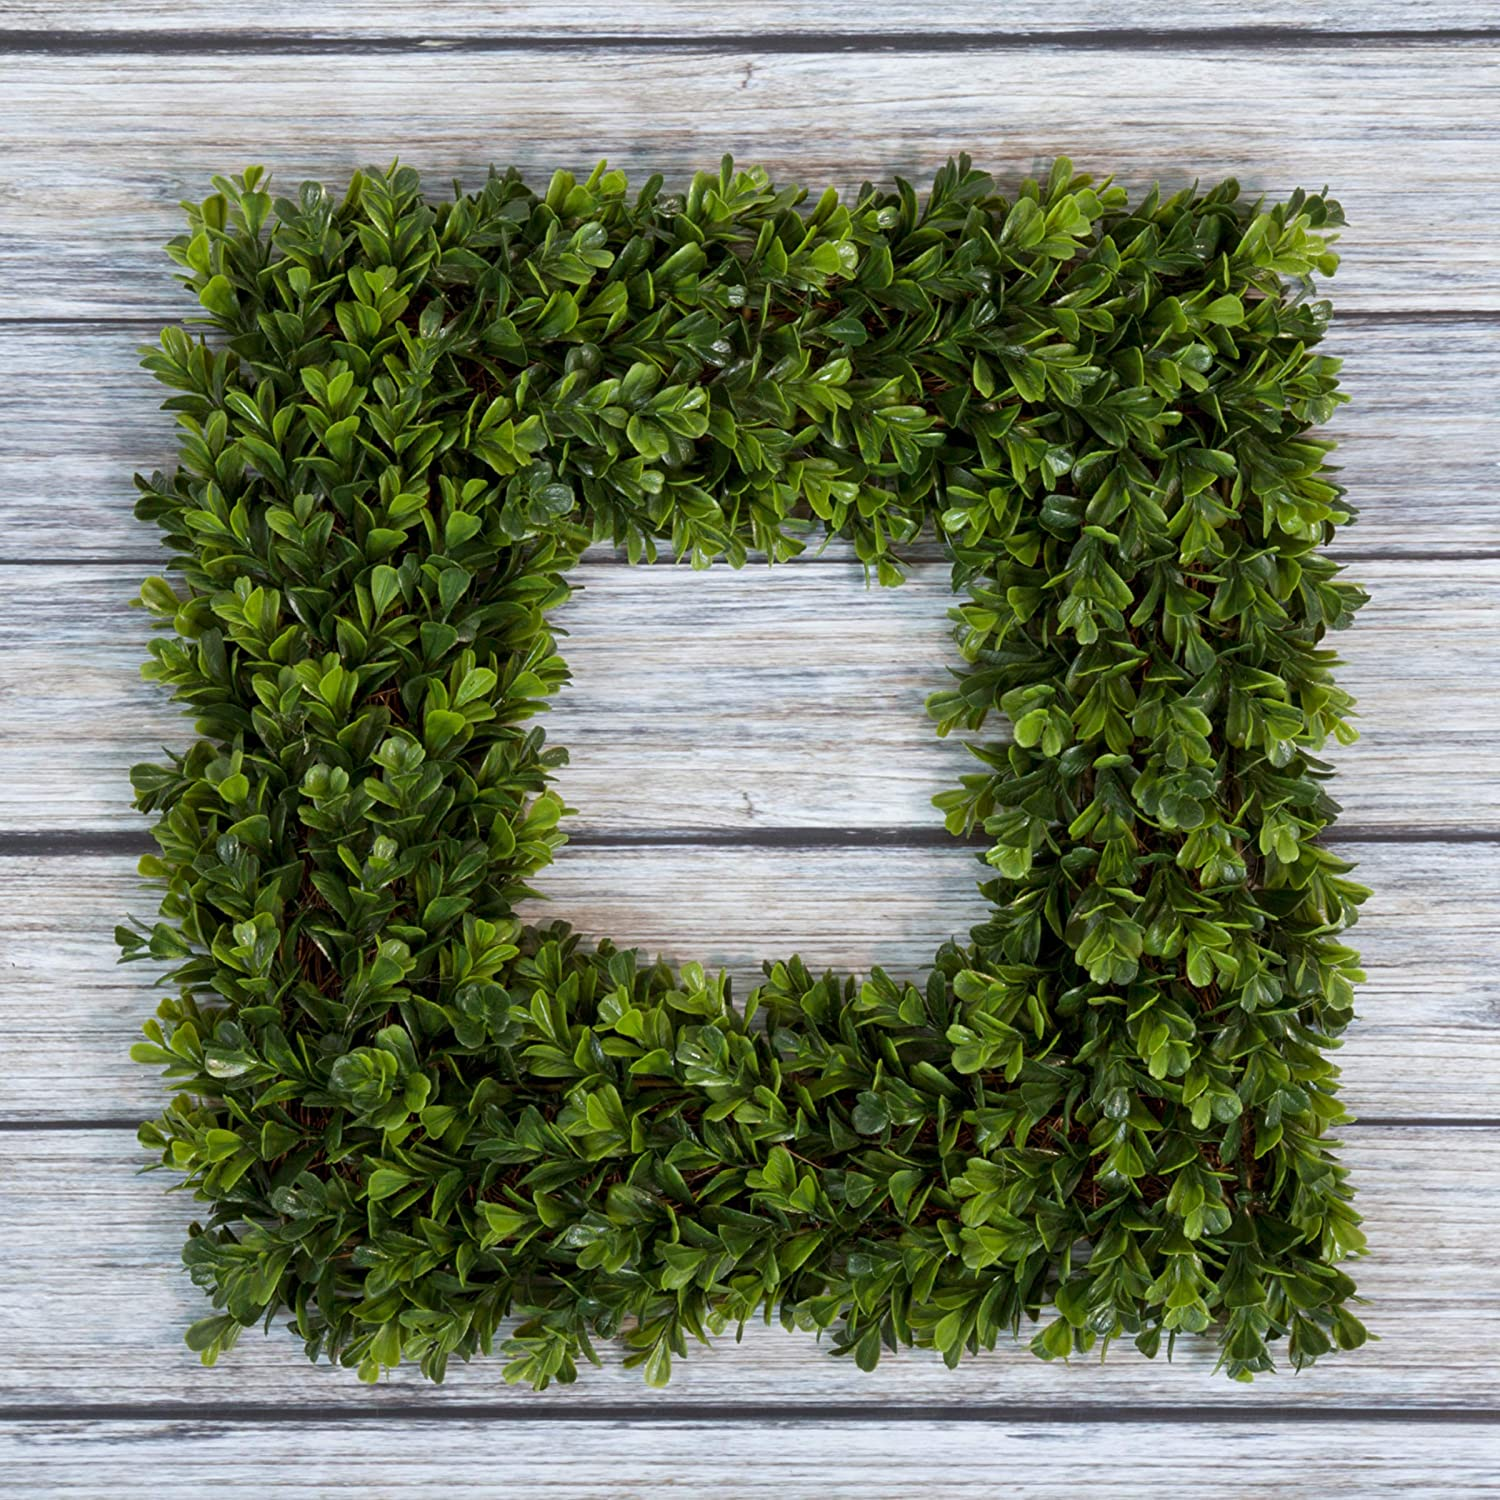 Pure Garden Boxwood Artificial Wreath For The Front Door Home Décor Uv Resistant 16 5 Inches Square 16 5x3 Green Home Kitchen